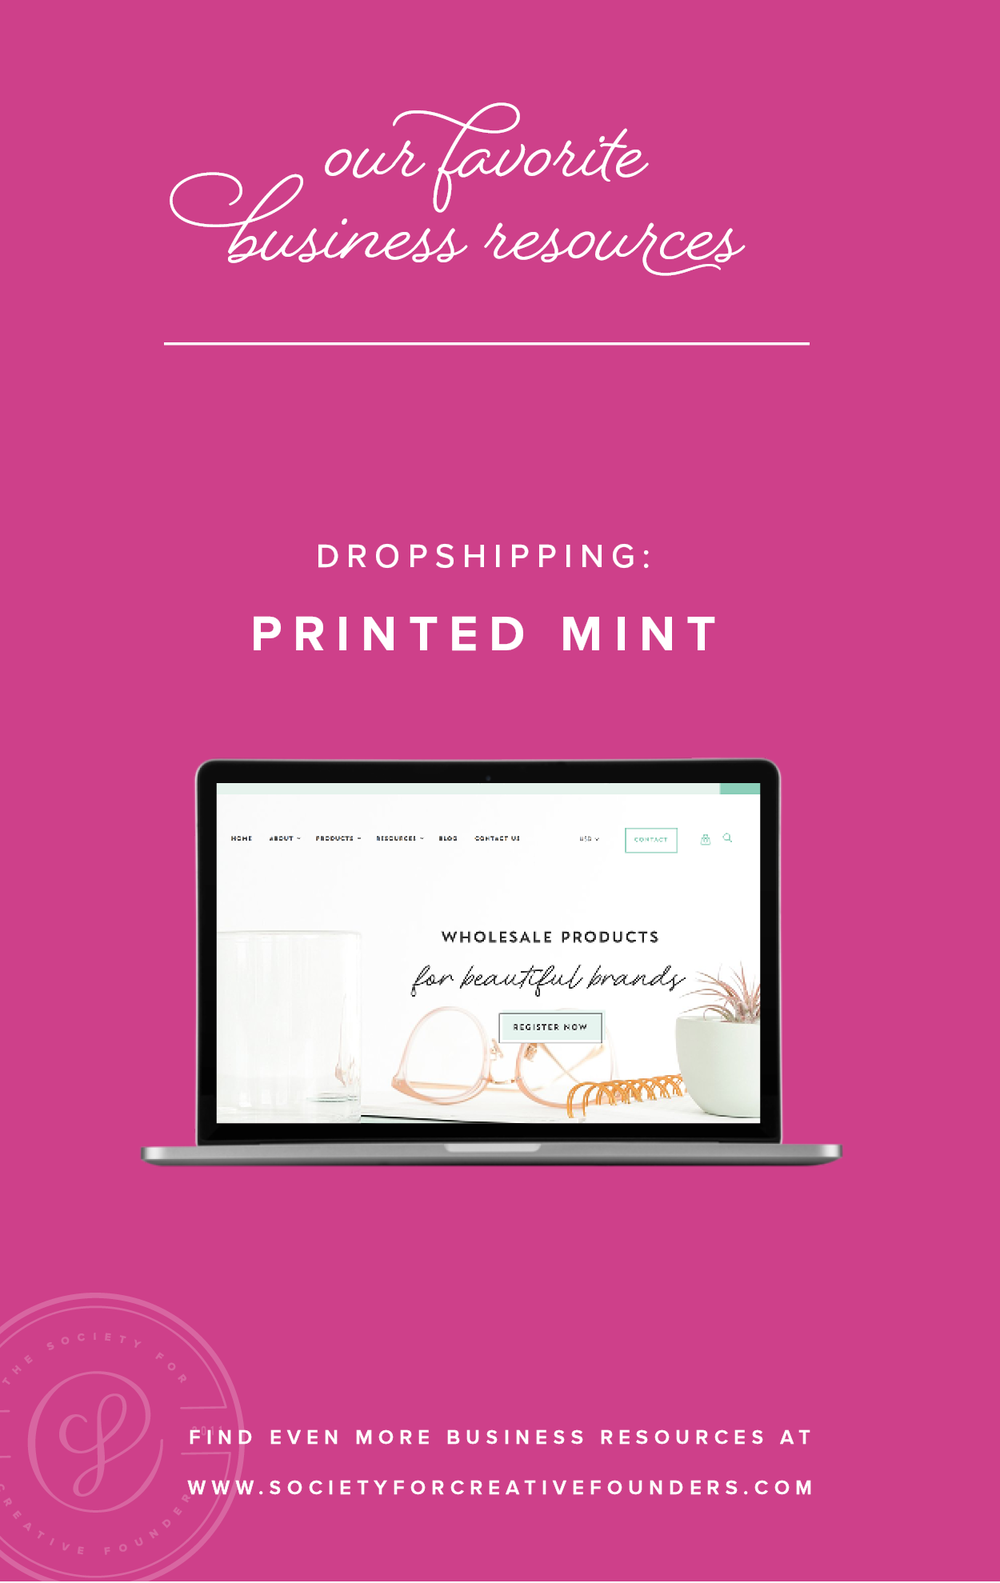 Dropshipping with Printed Mint - Favorite Business Resources from Society for Creative Founders